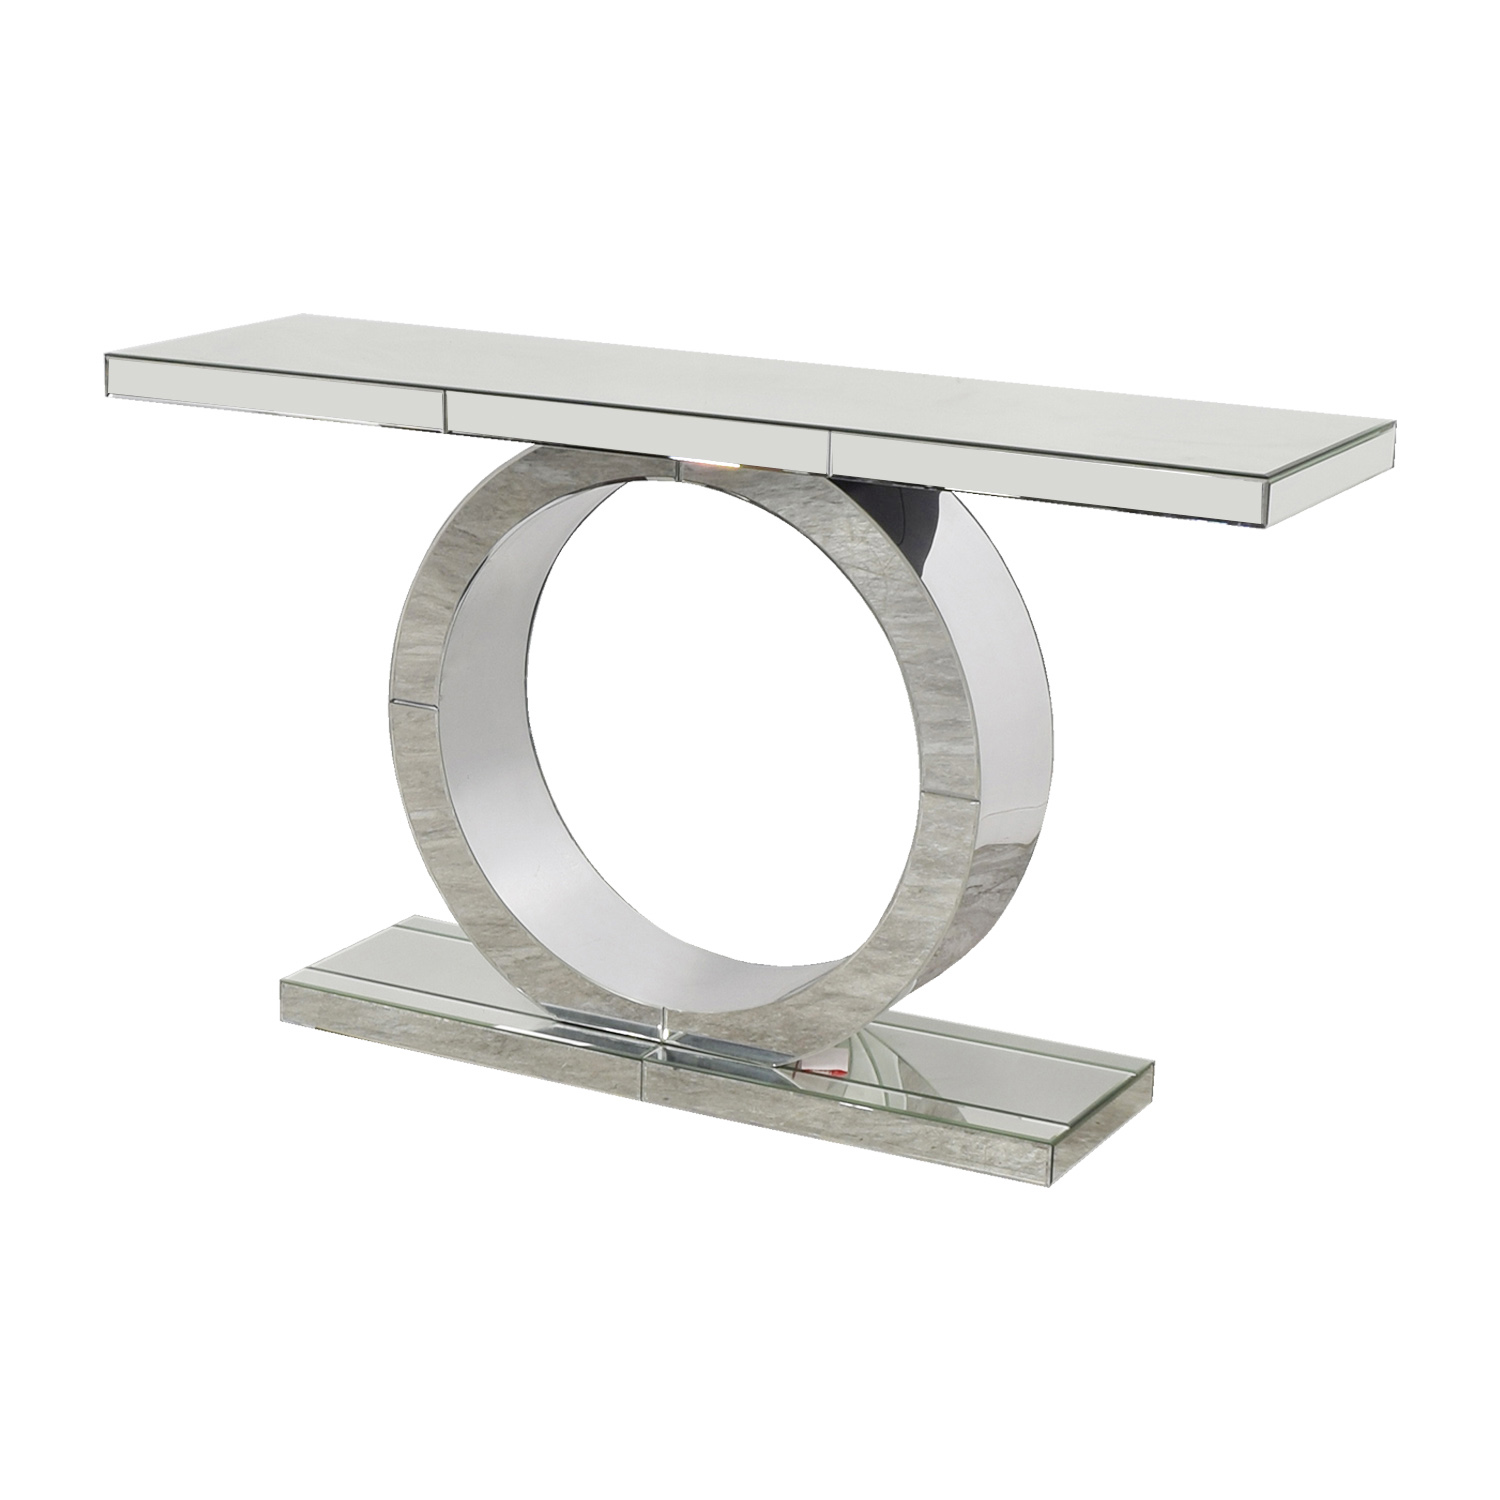 ... American Signature American Signature Olympia Mirrored Sofa Table On  Sale ...